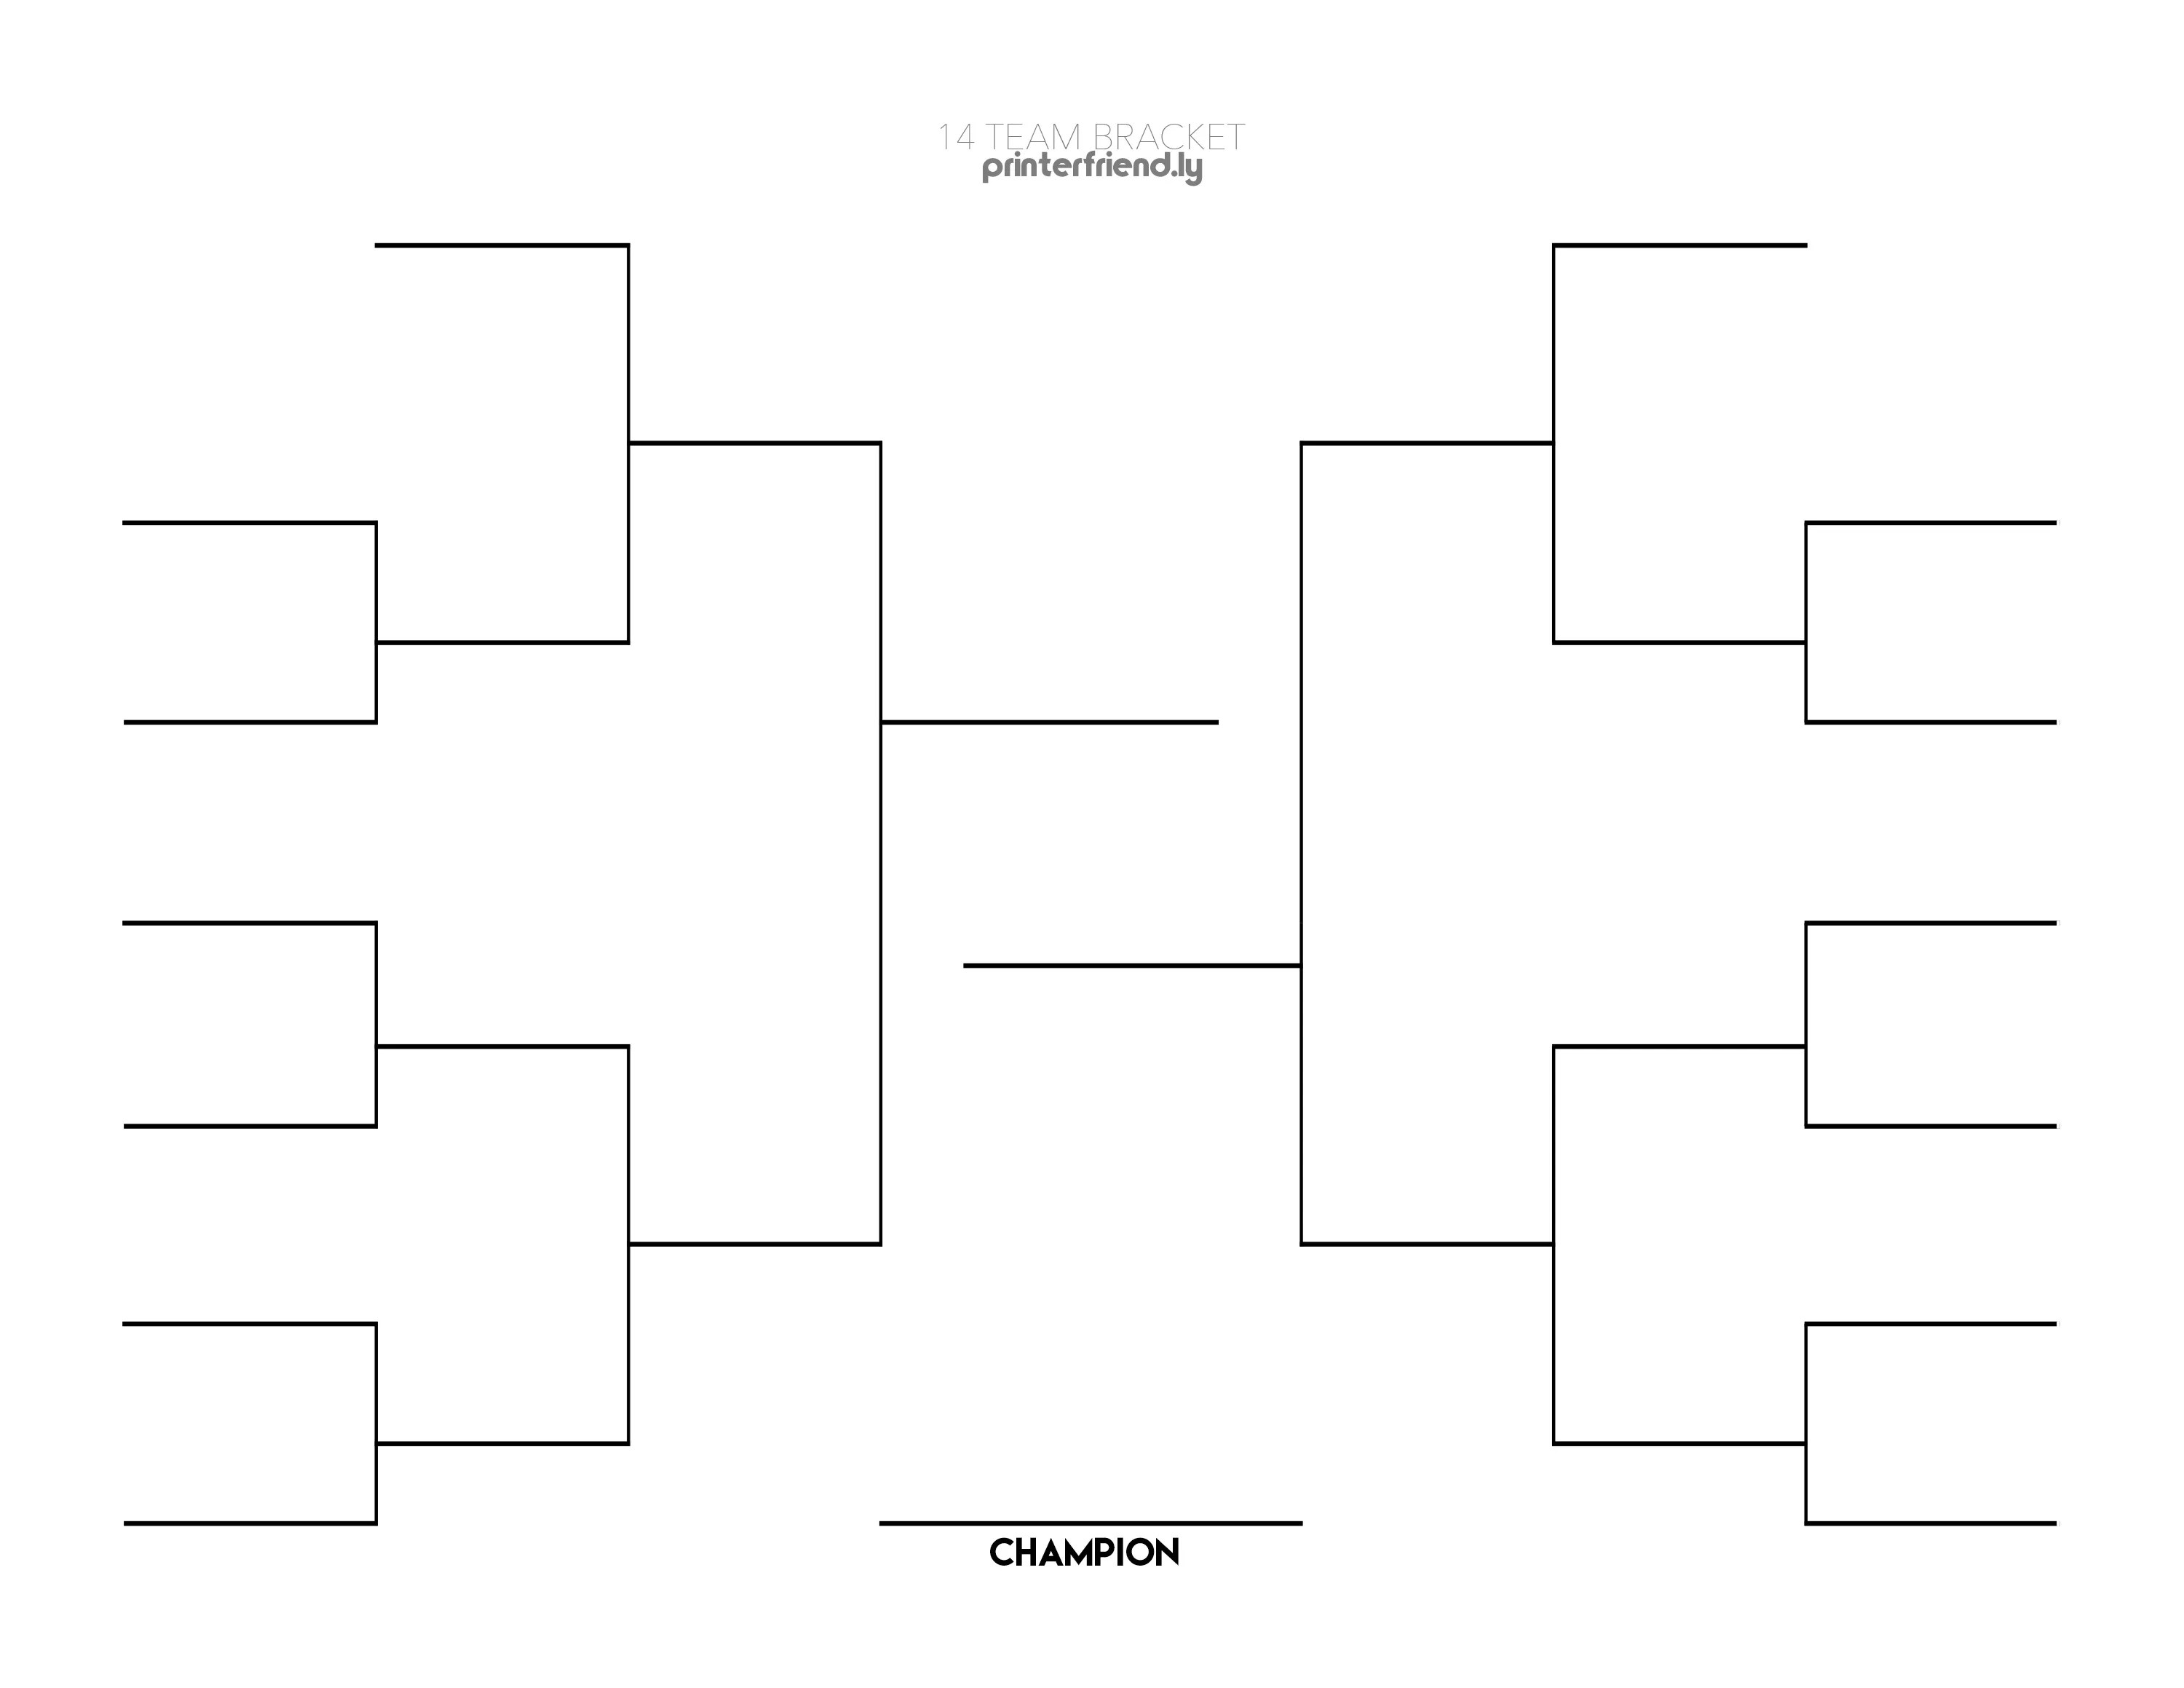 14 Team Single Elimination Bracket Printable Fillable In Pdf Format Printerfriend Ly